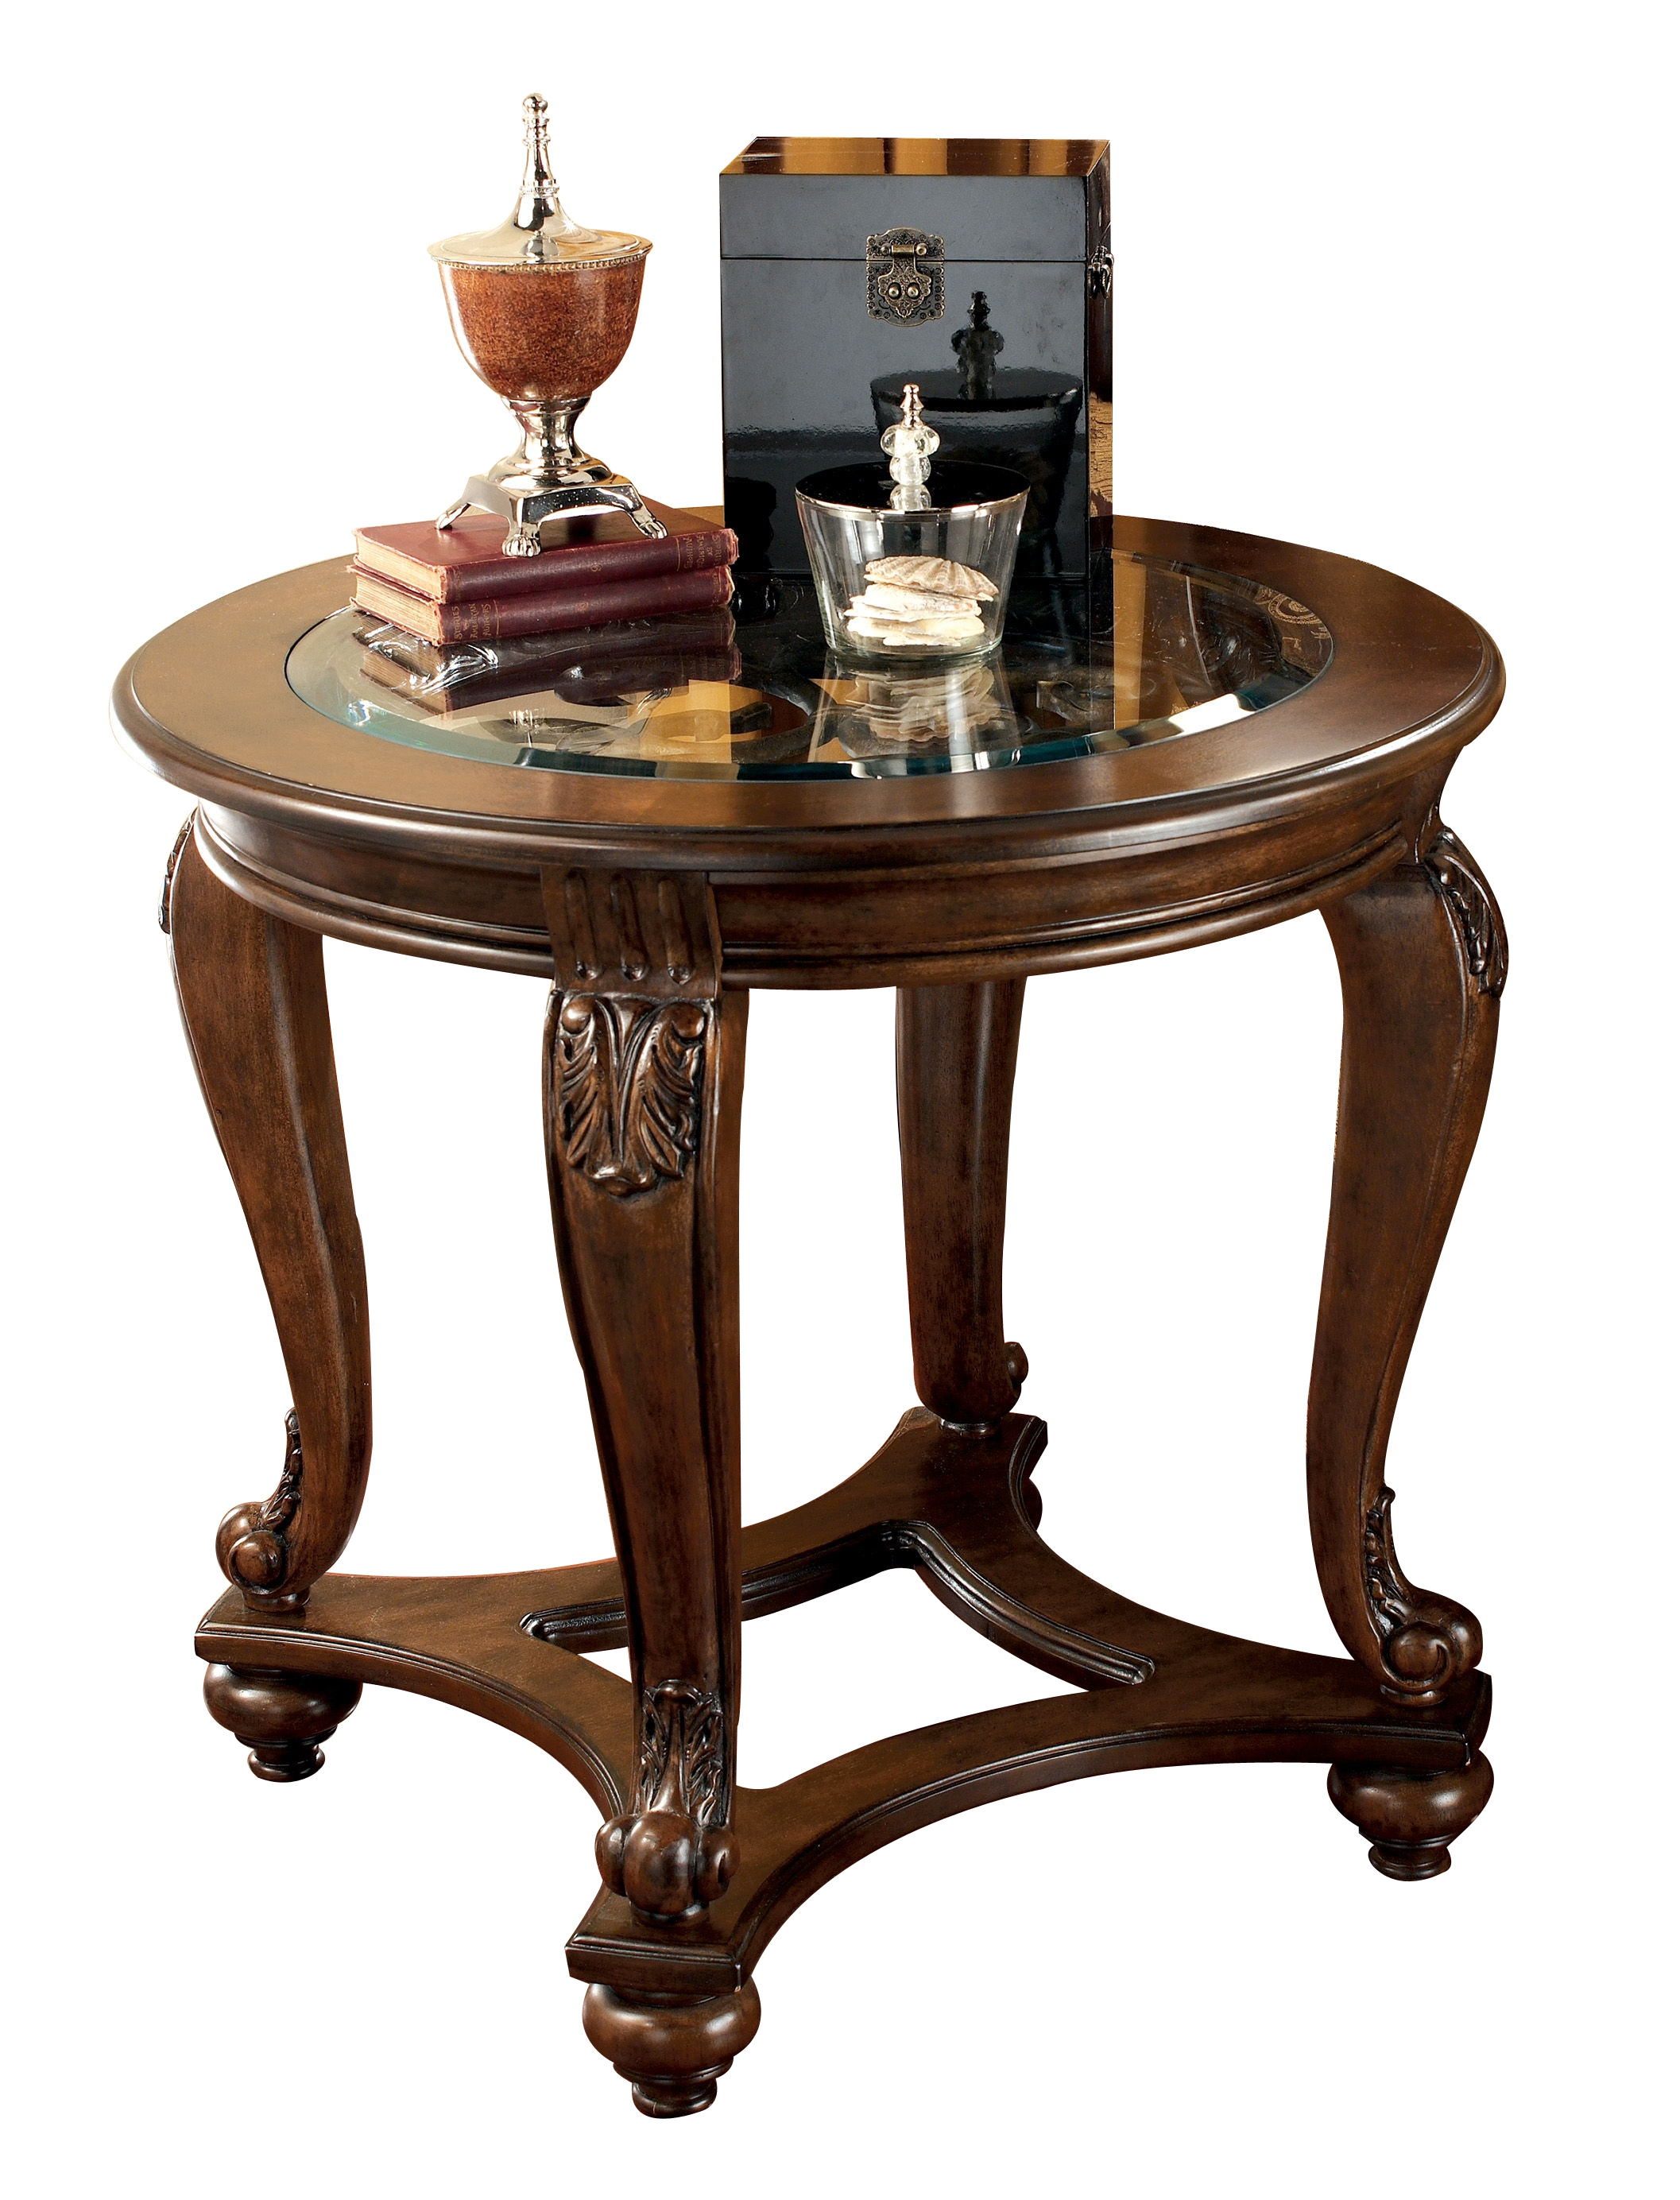 ashley furniture norcastle end table the classy home wbg coffee tables click enlarge storage cabinet glass top with drawer parsons audio industrial style thomasville dresser dark